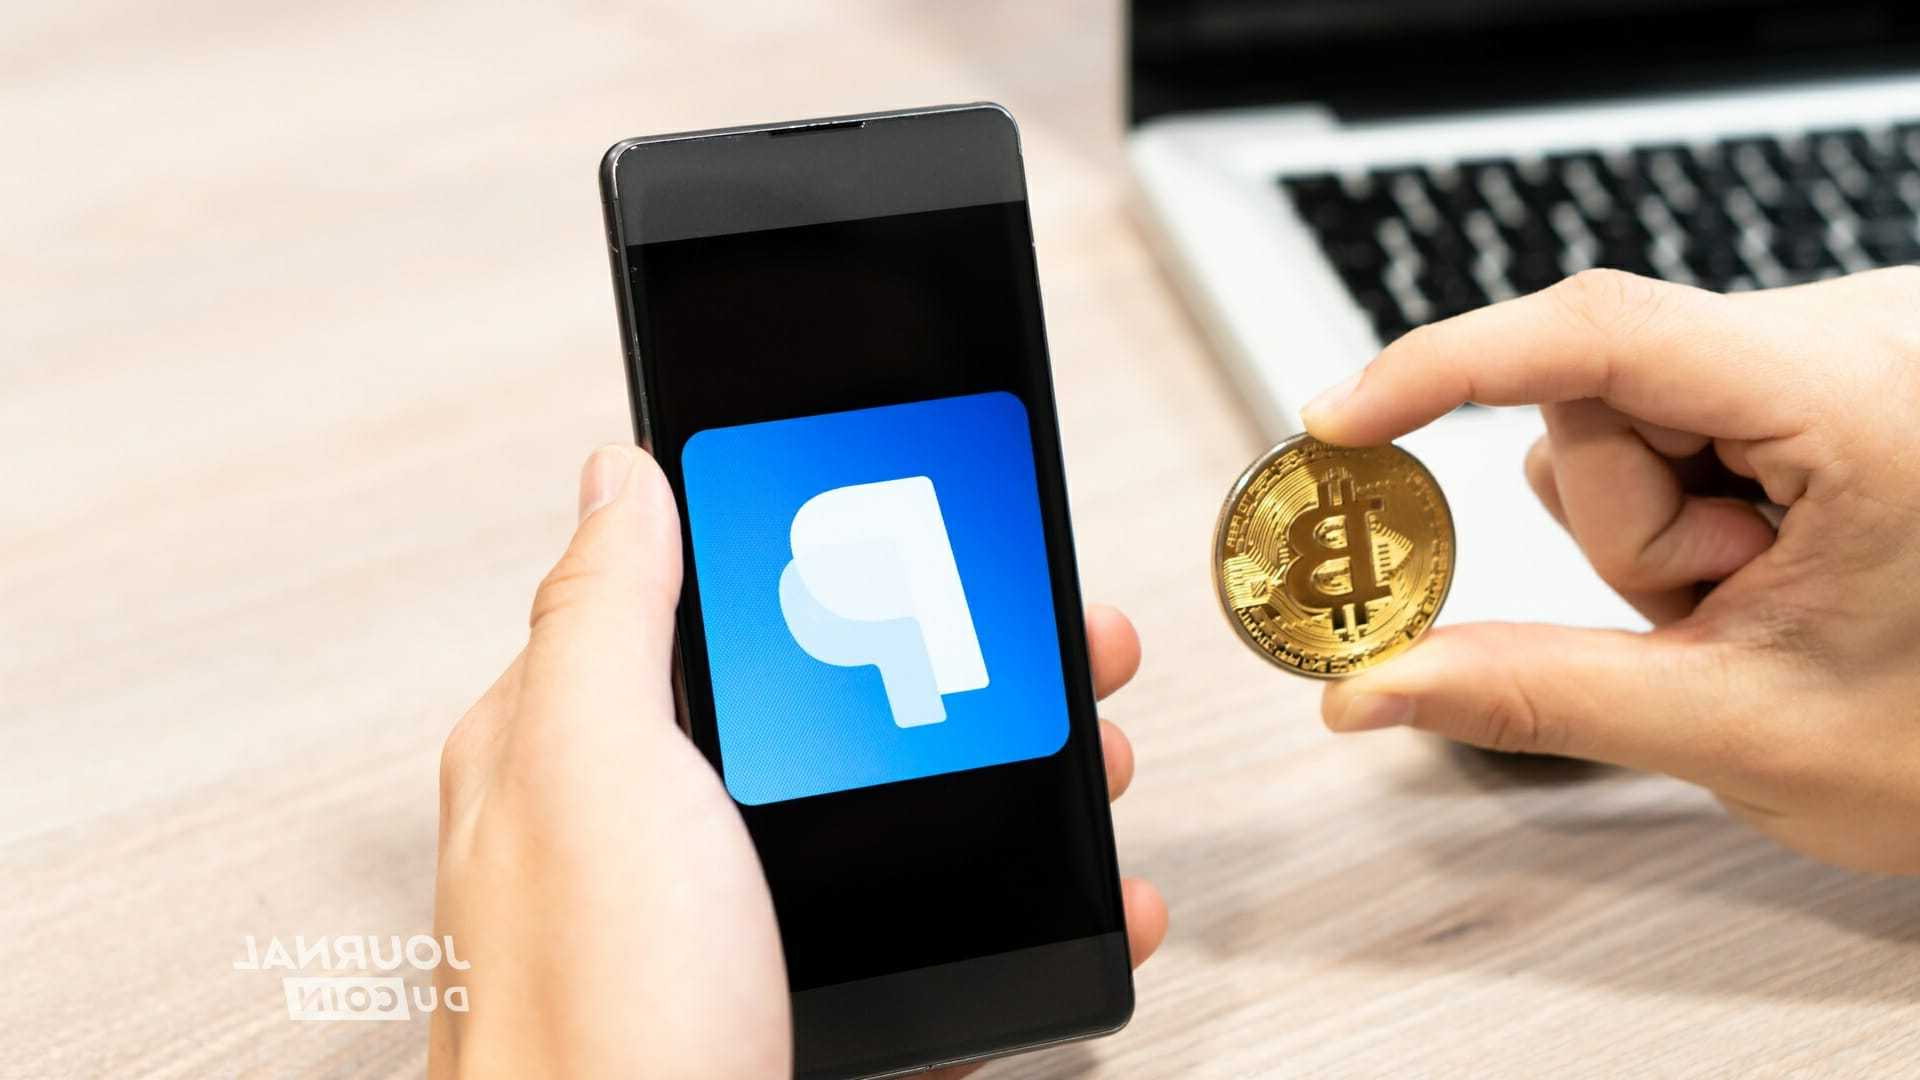 The booking now accepts payments in cryptocurrency